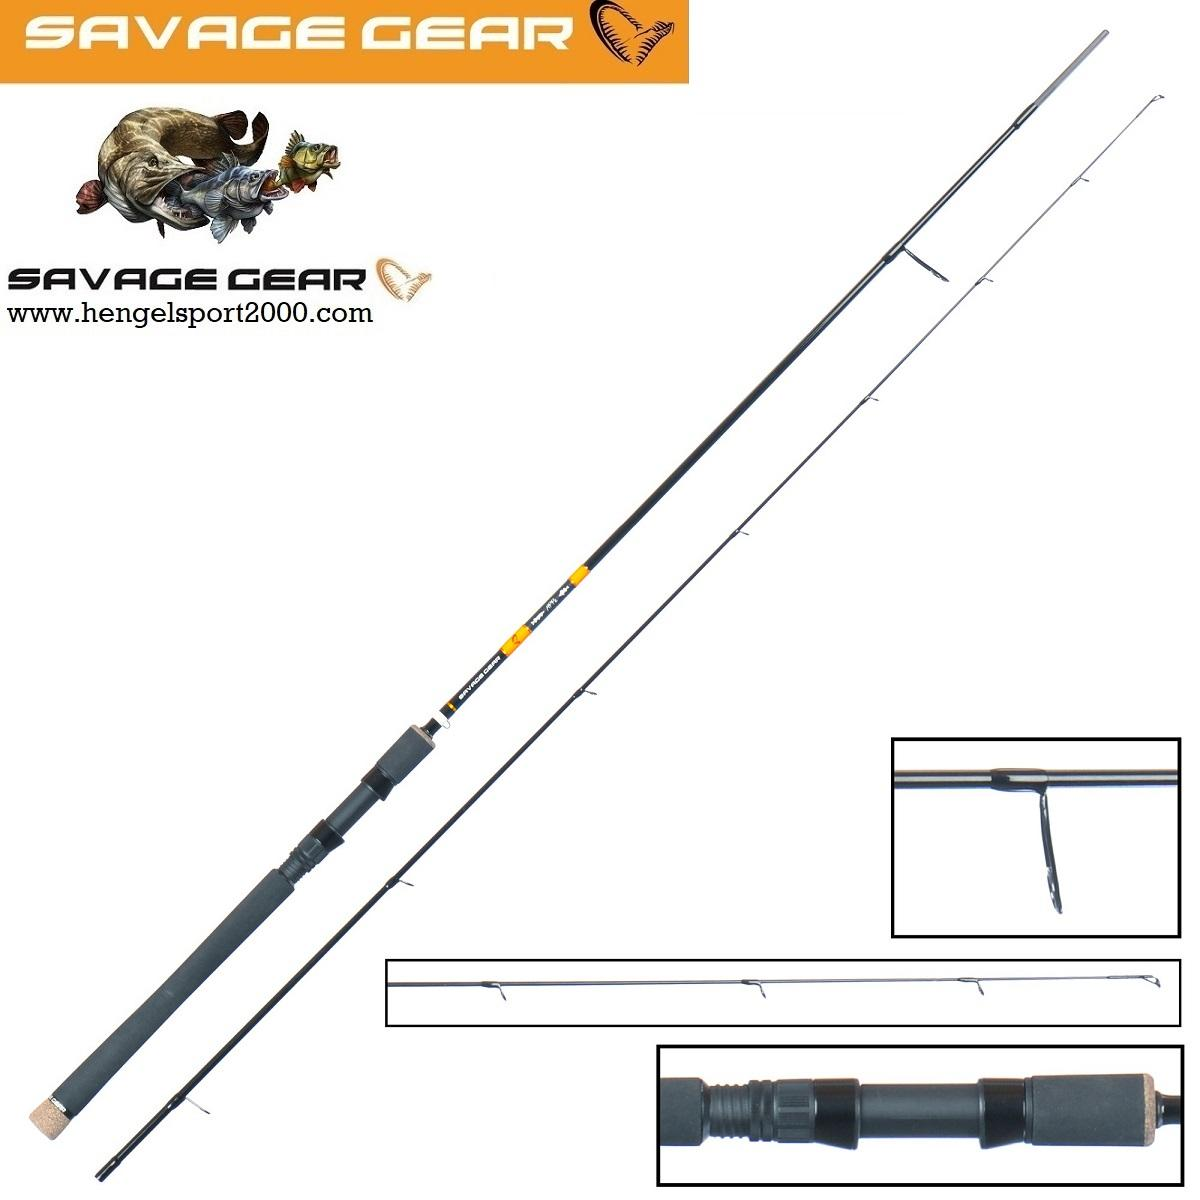 Savage Gear Multi Purpose Predator2 Spin 251 cm 7 - 25 gram